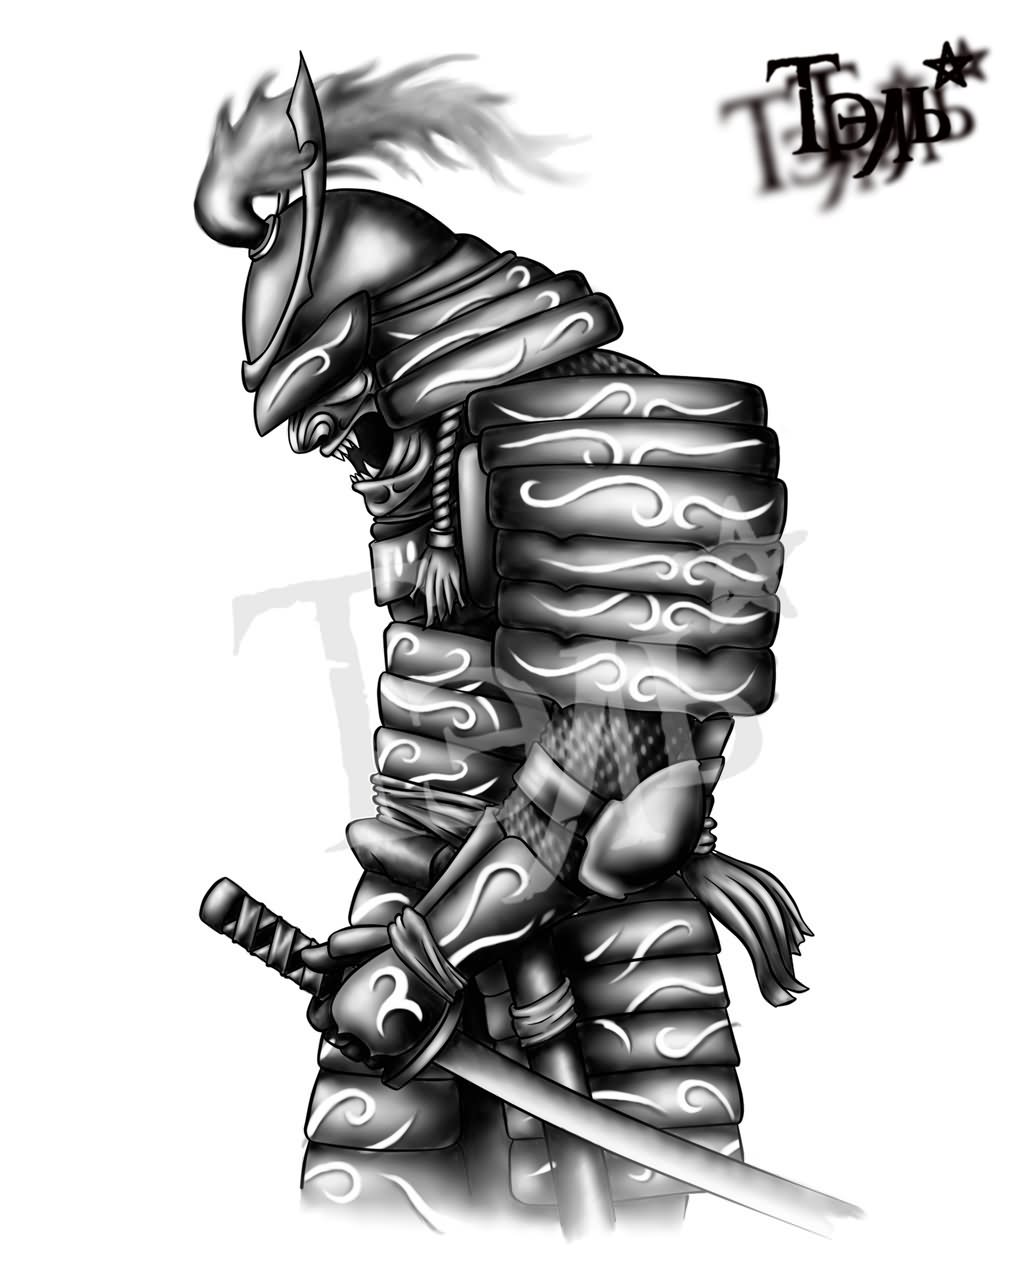 27 samurai forearm tattoos designs ideas for Black and grey tattoo designs